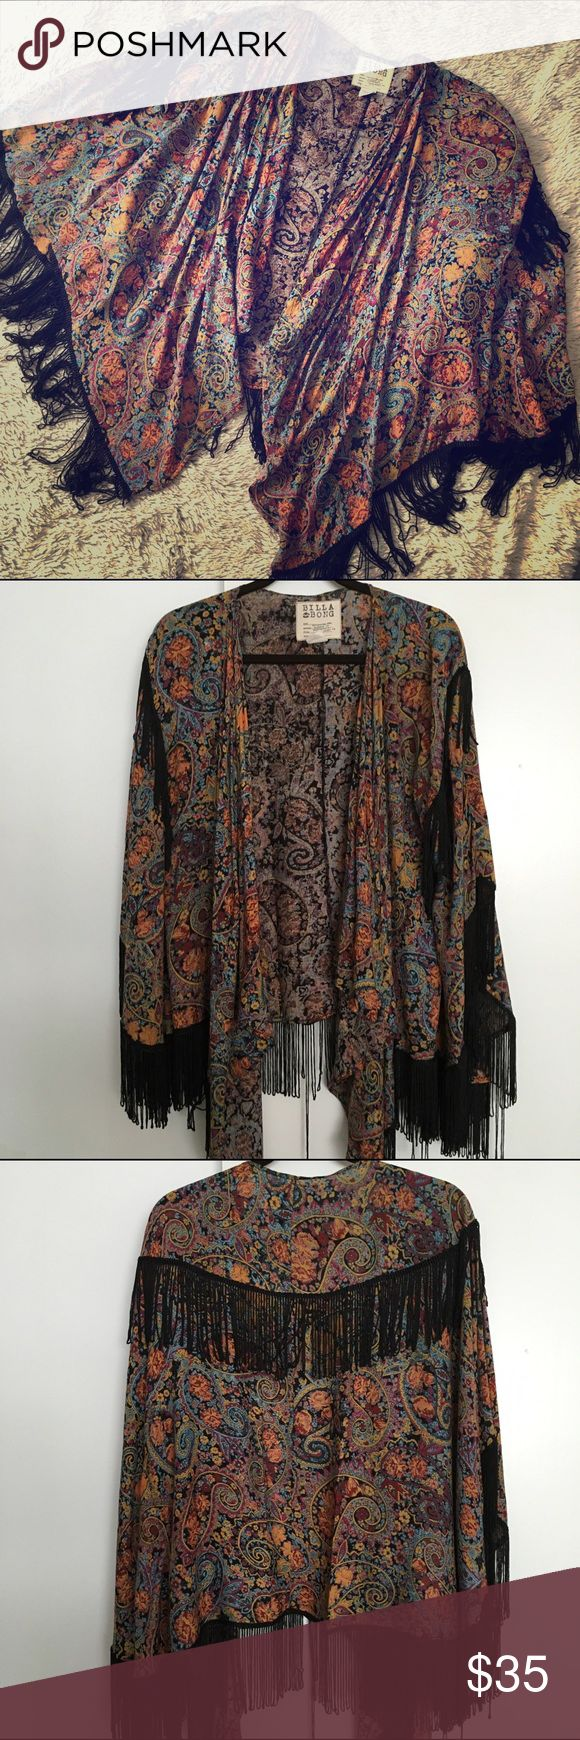 Paisley Print Fringe Kimono by Billabong Paisley print kimono by Billabong.  Has black fringe along the hem and shoulders onto the back.  In excellent condition apart from a few stretched out pieces of fringe.  Can be removed and no one would even know.  Boho Chic!!! Billabong Sweaters Shrugs & Ponchos